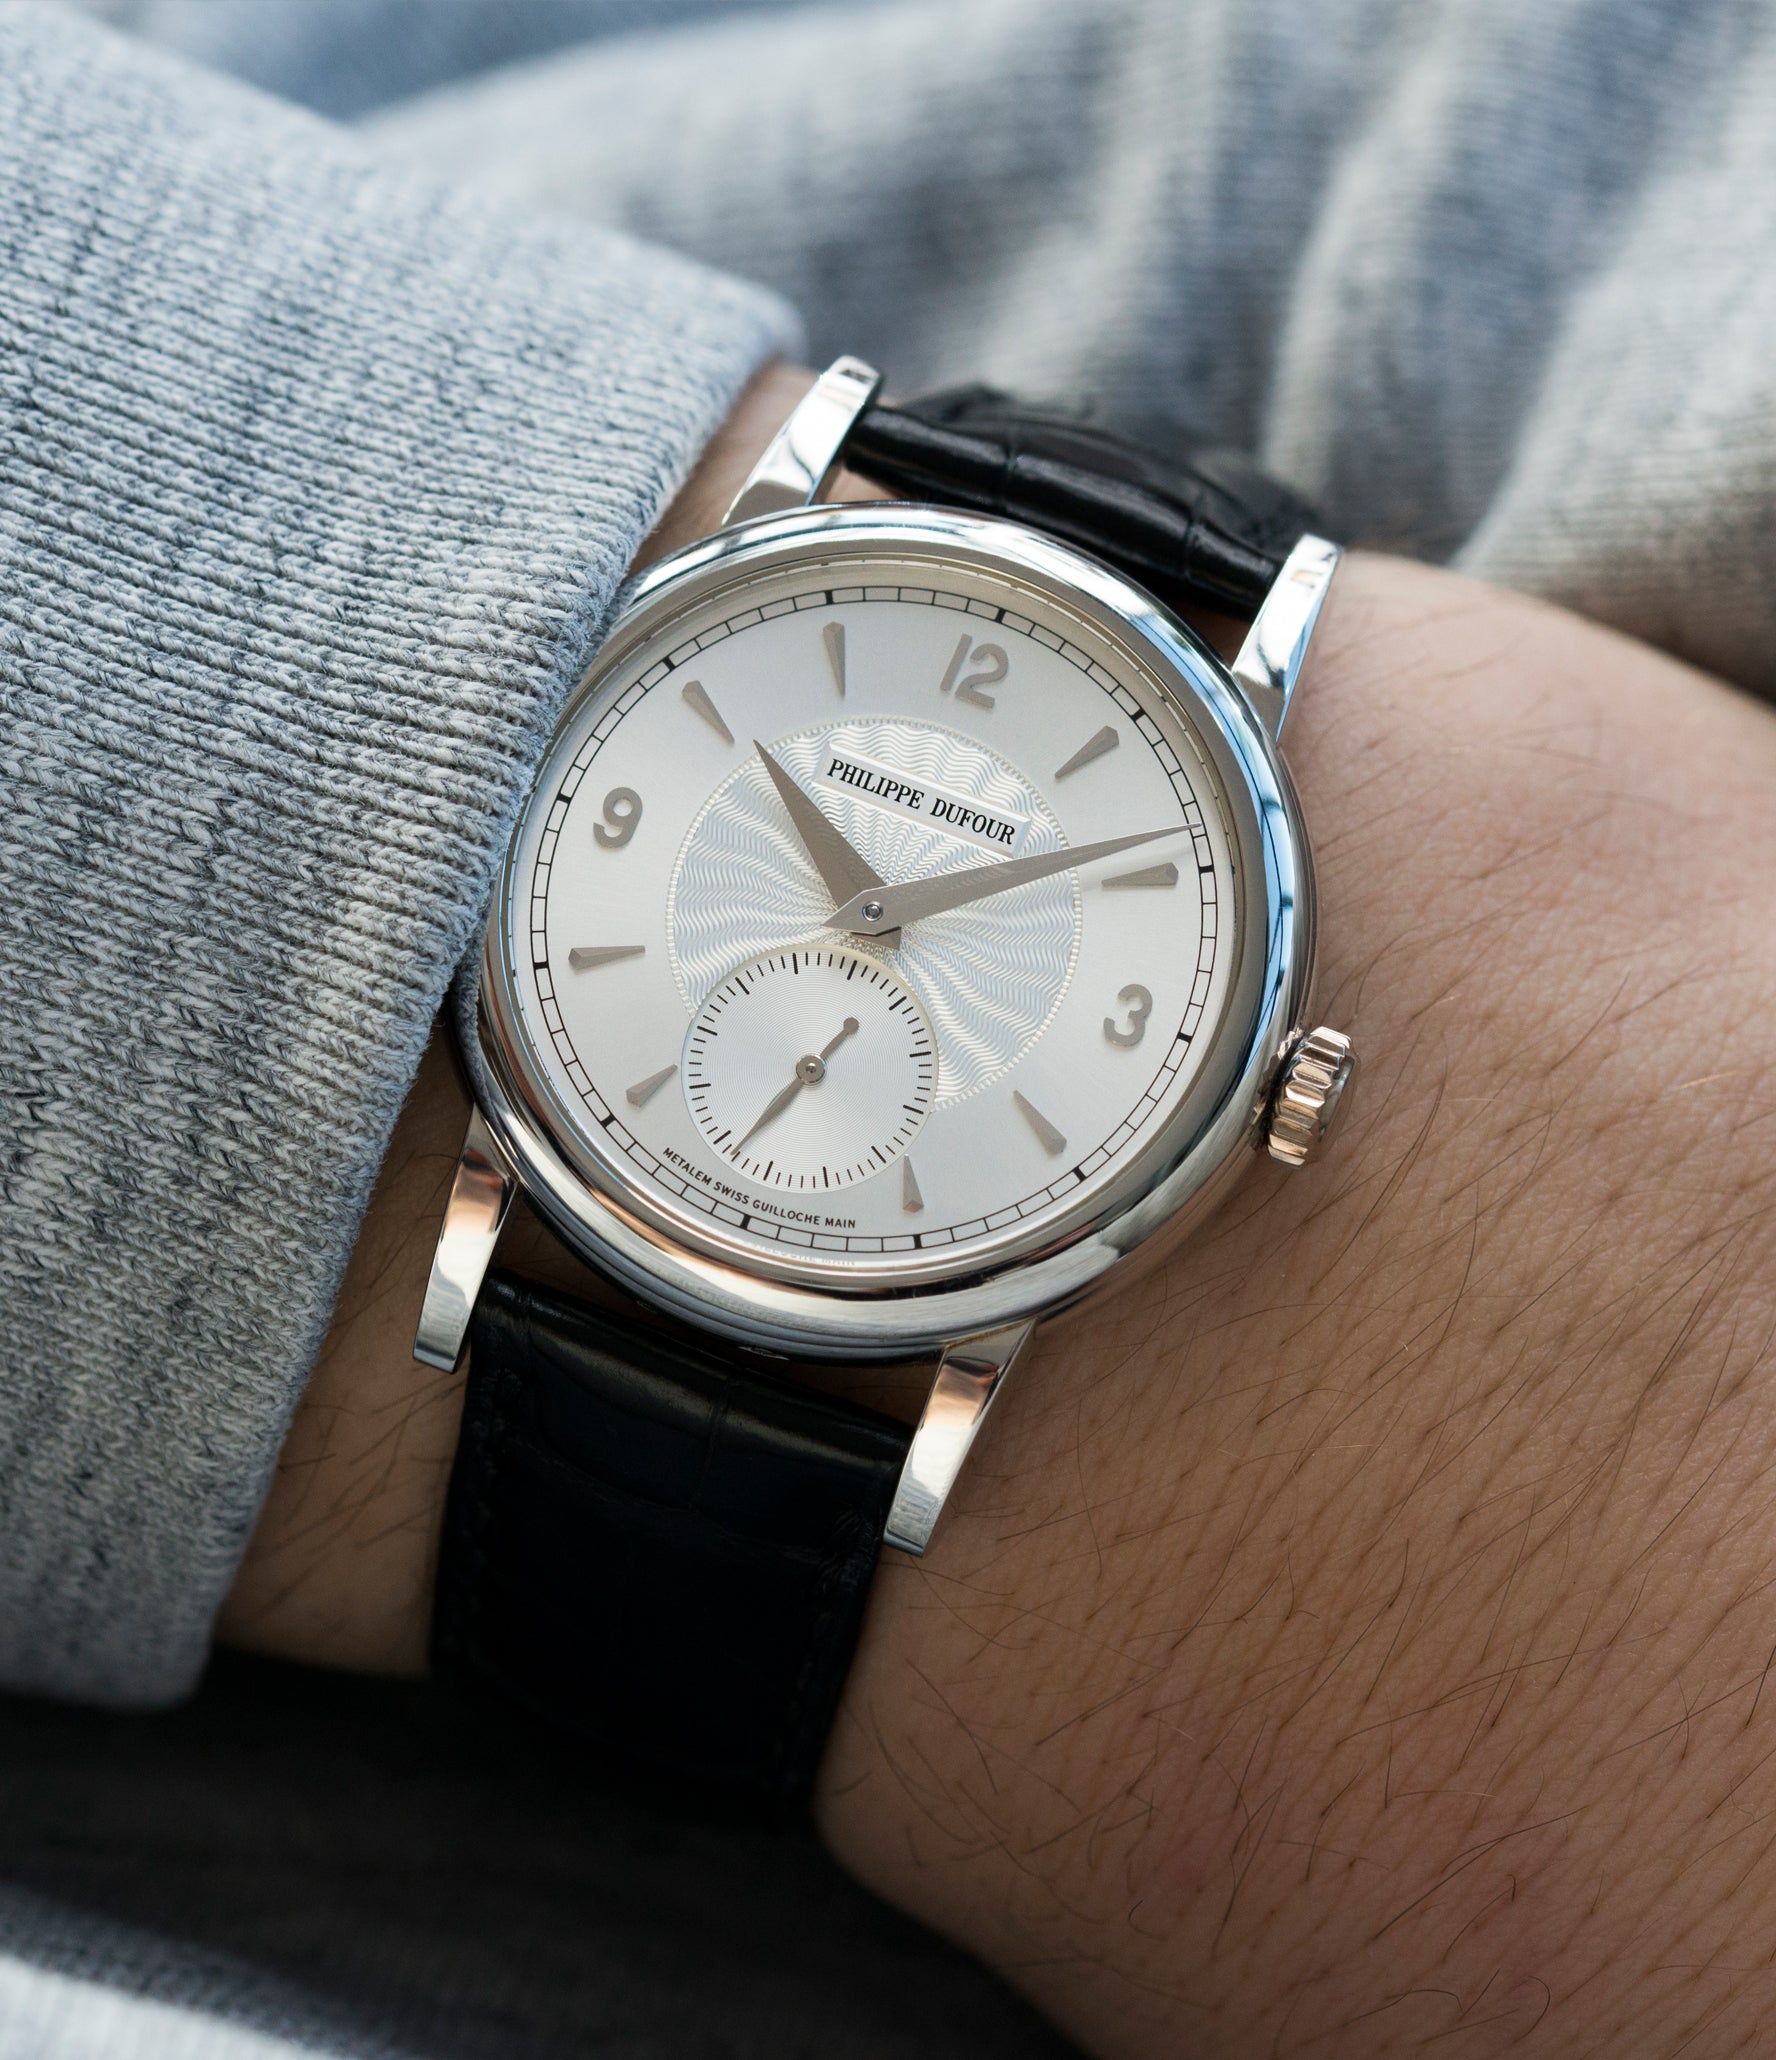 selling rare men's luxury watch Philippe Dufour Simplicity platinum time-only dress watch for sale online at A Collected Man London UK approved specialist of preowned independent watchmakers